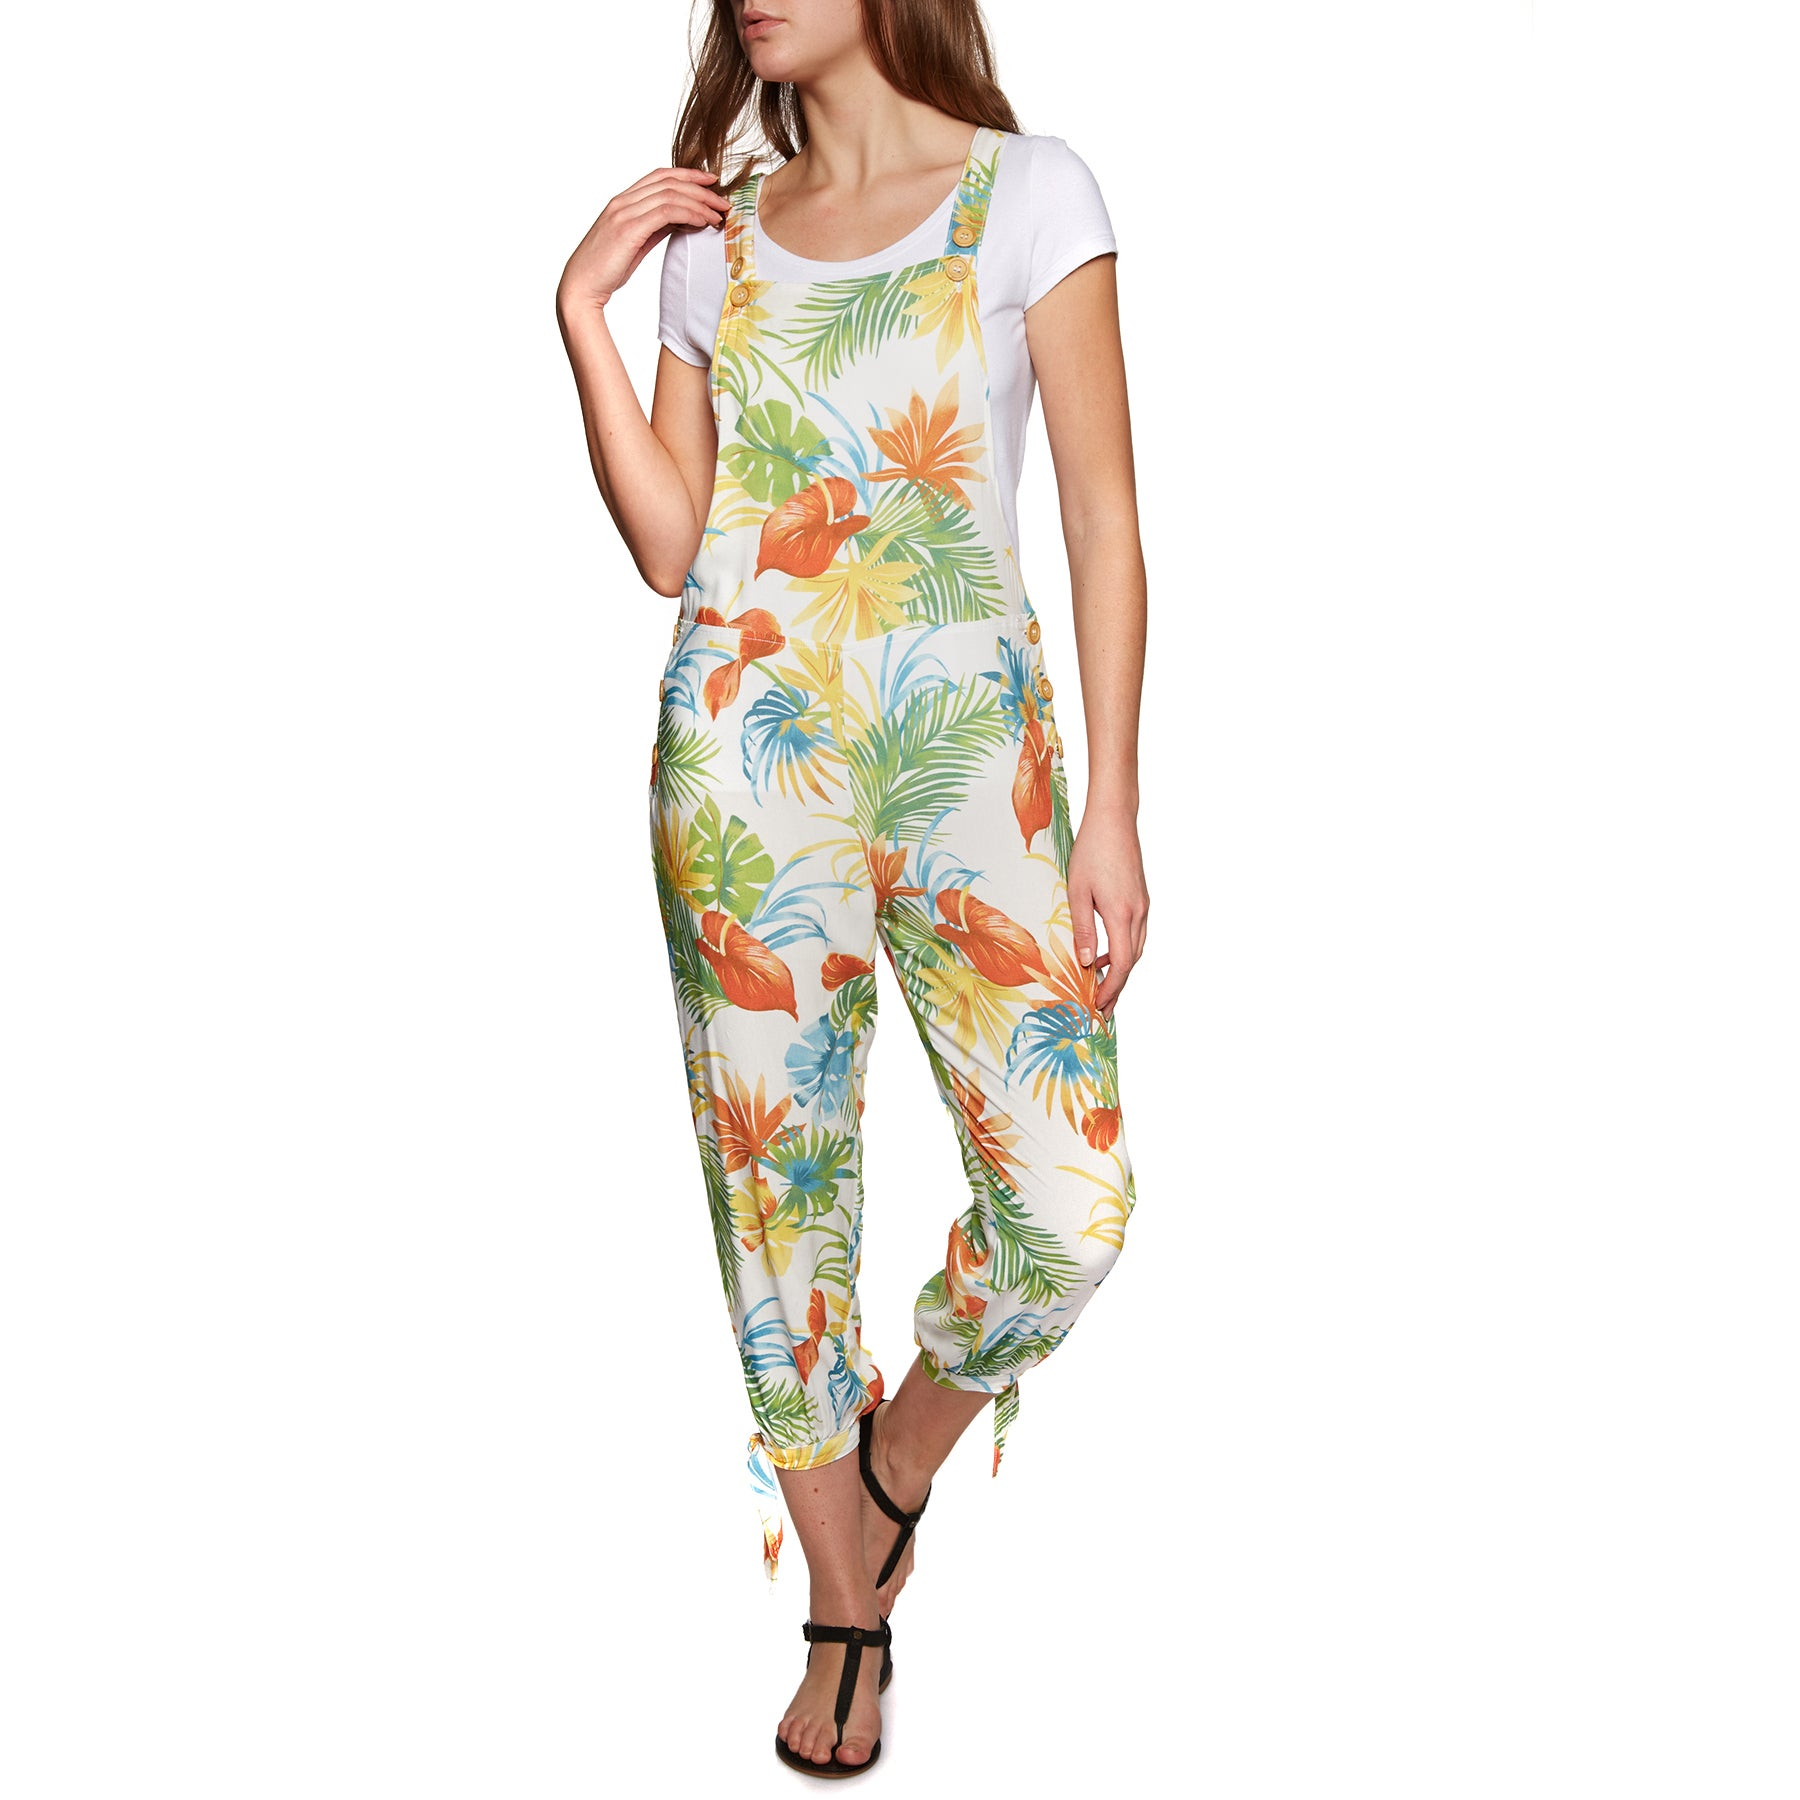 Rhythm Tropicana Jumpsuit - White